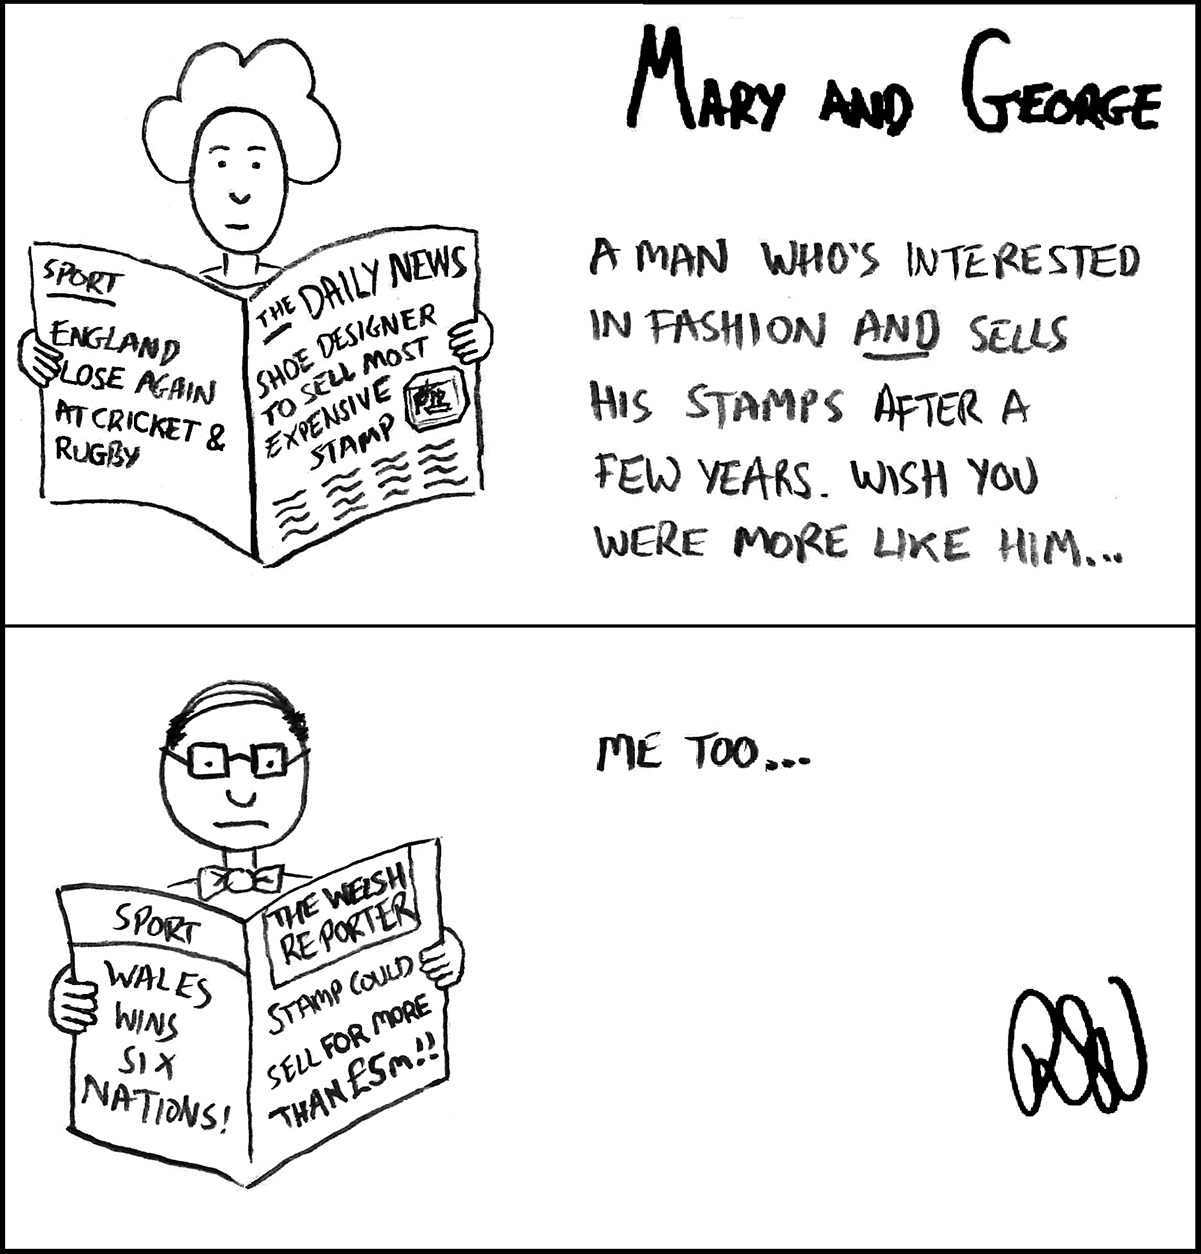 Cartoon Mary and George episode #24